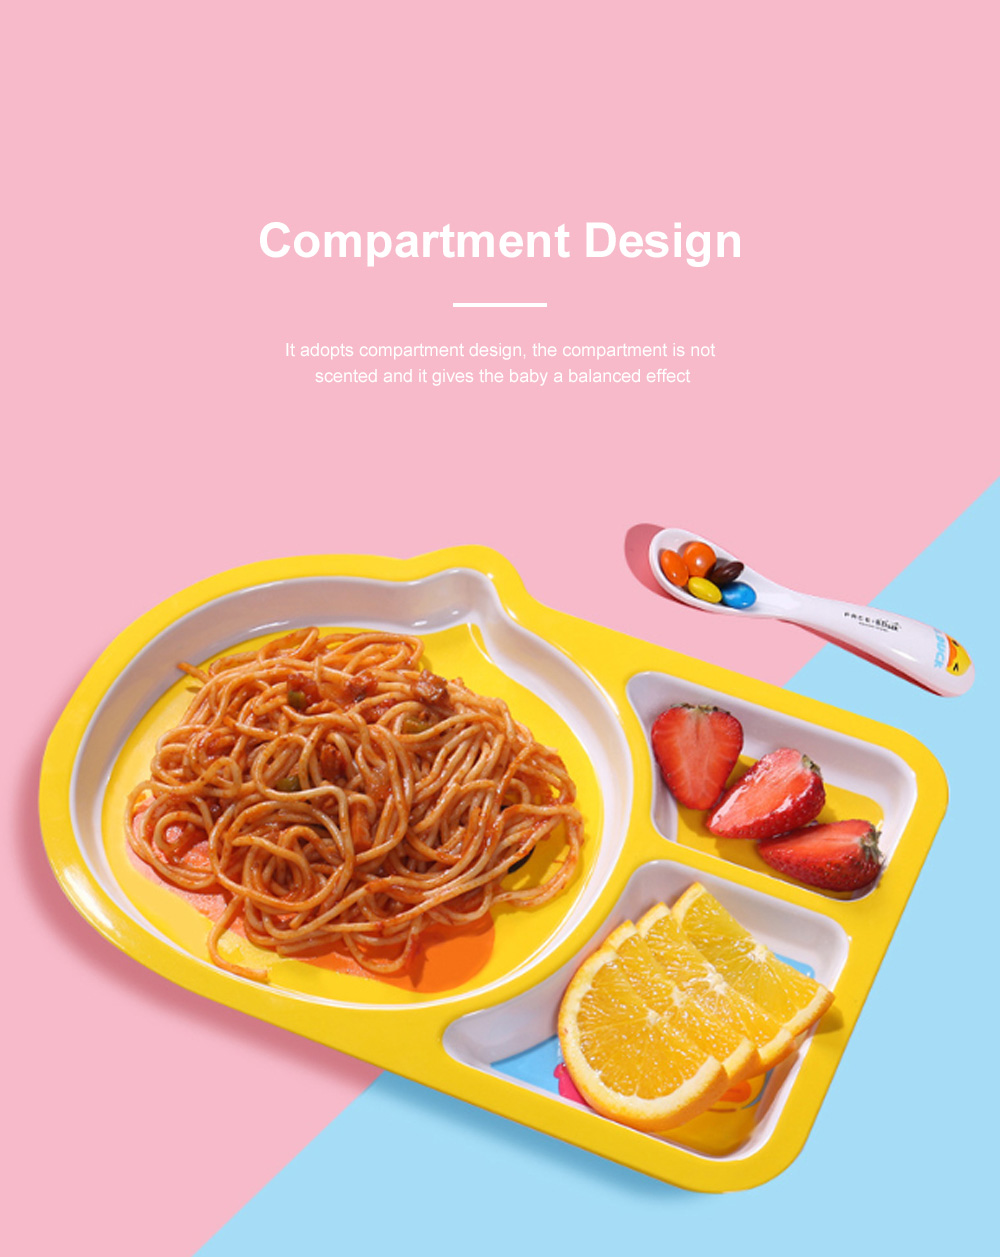 Small Yellow Duck Children's Tableware Baby Multi-function Cute Cartoon Plate Baby Shatter-resistant Food Supplement Bowl Fork Spoon Set 2